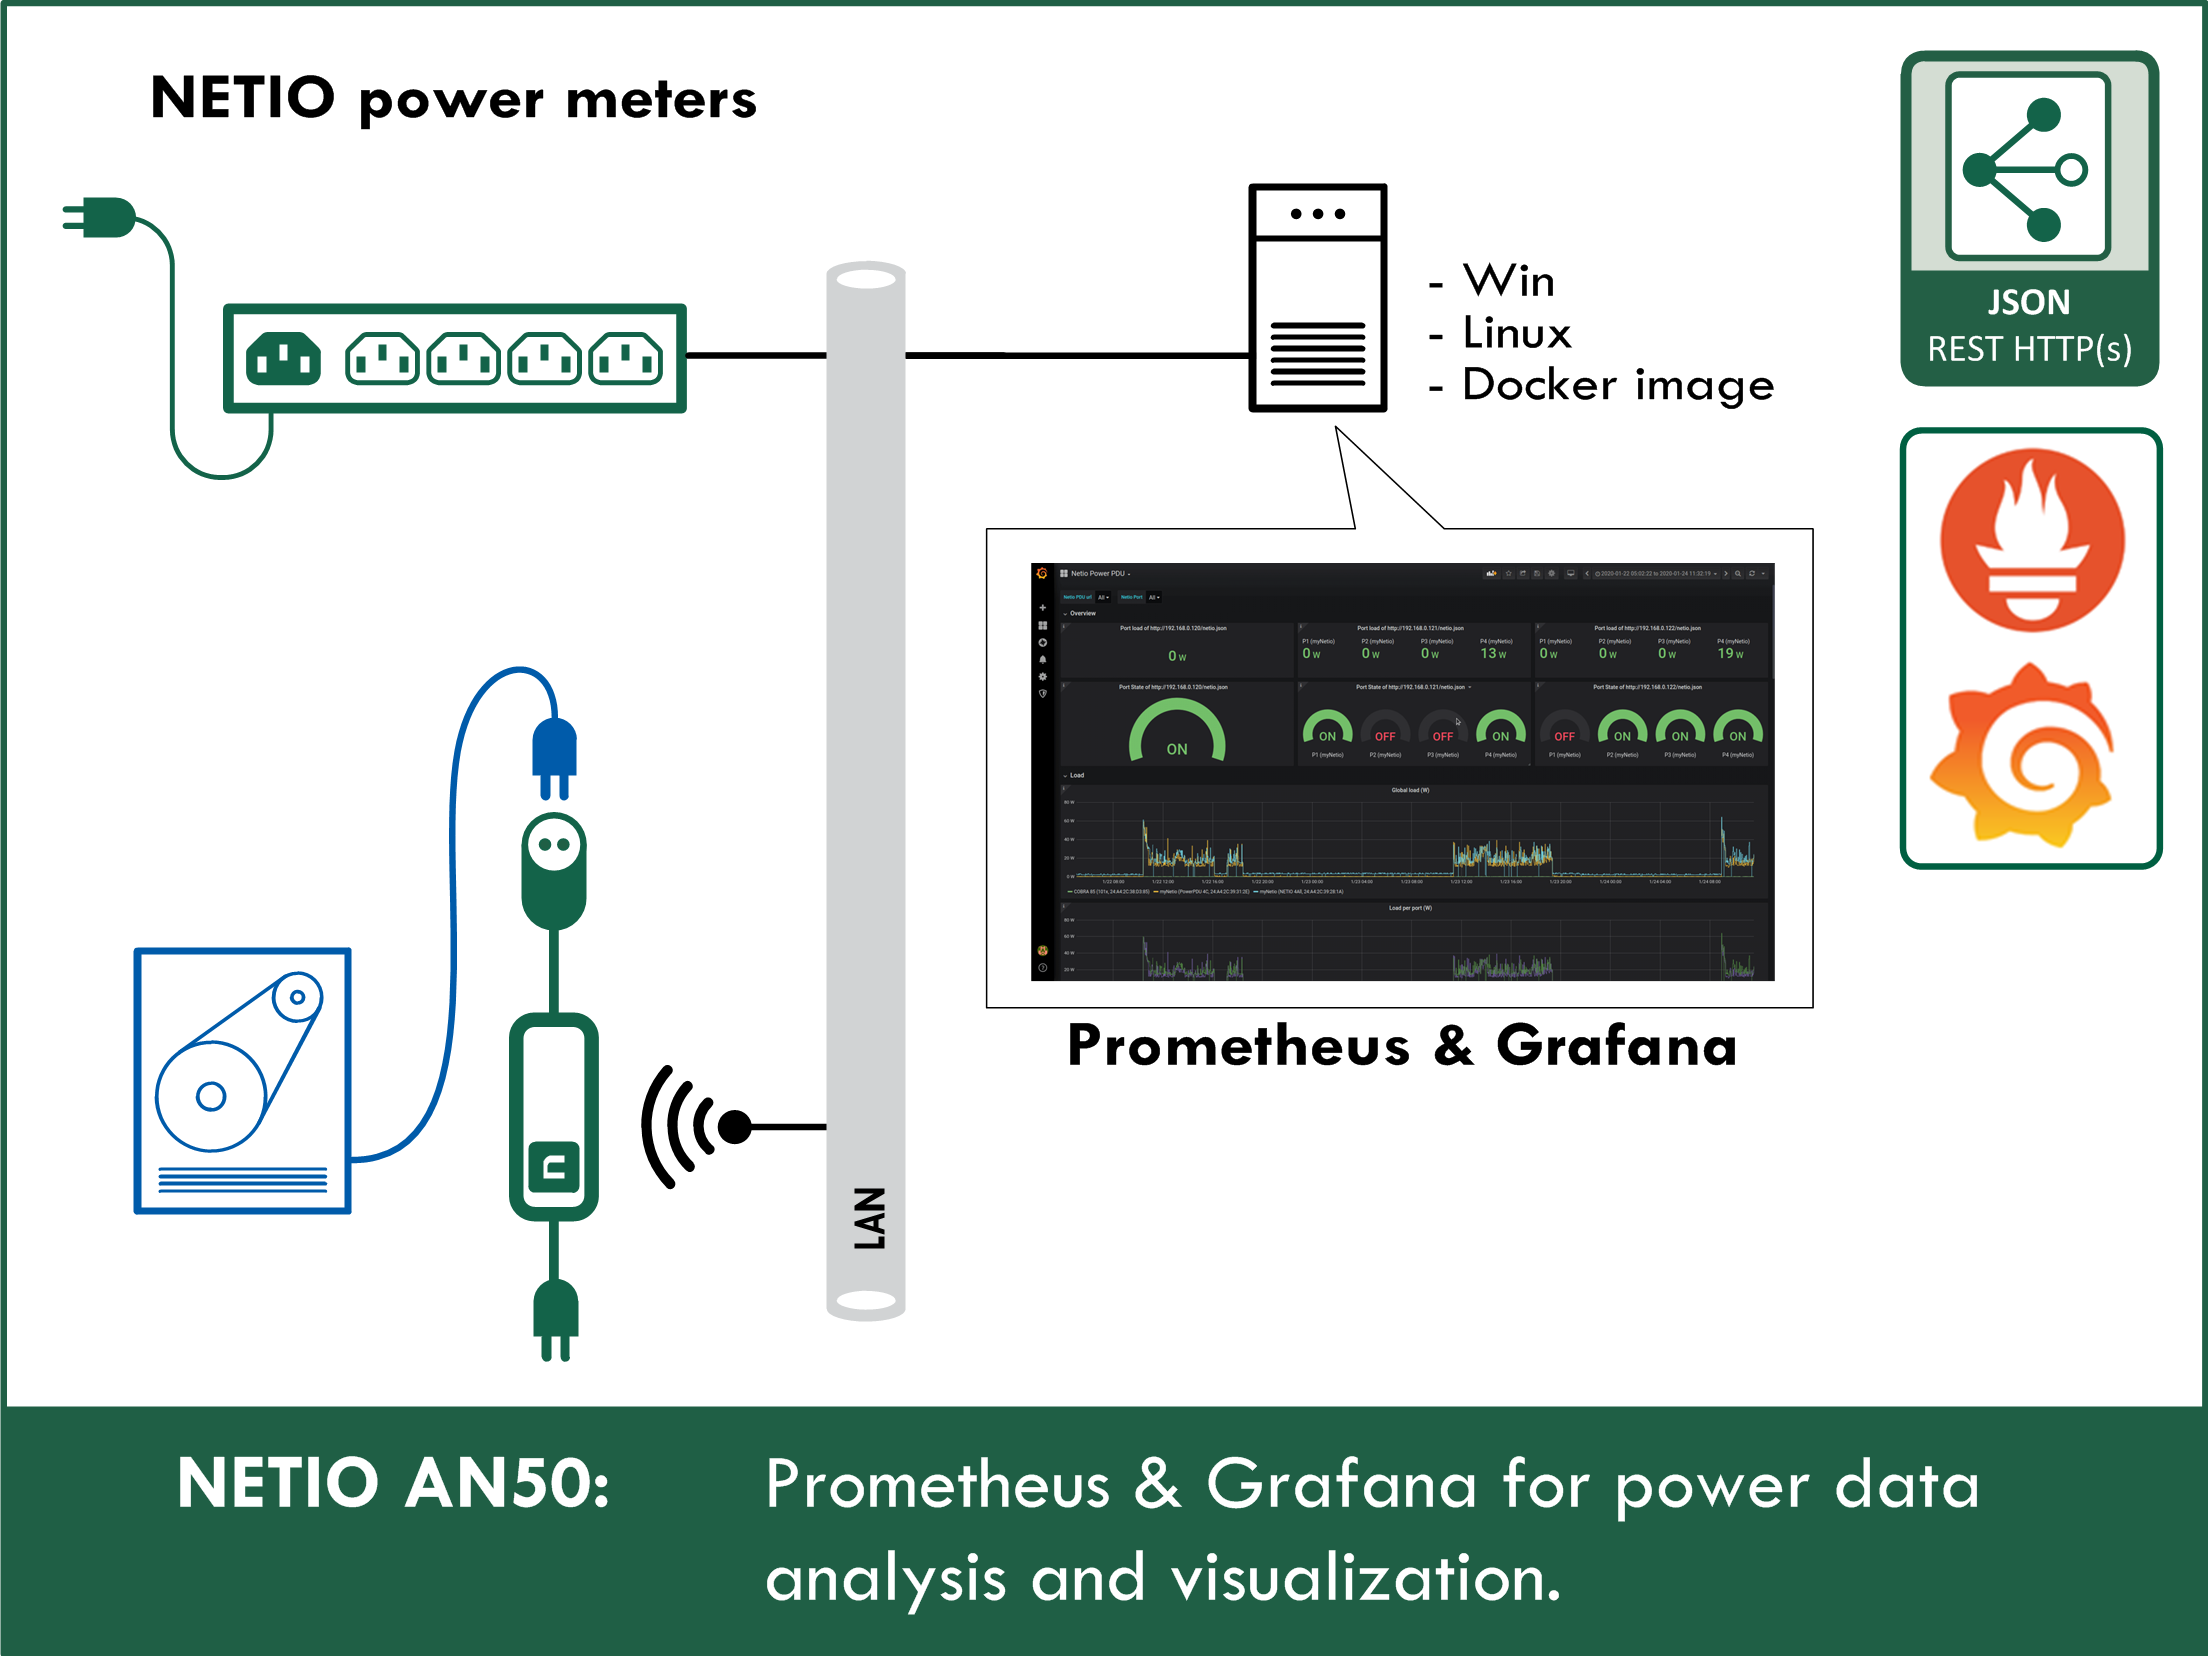 AN50 - Prometheus and Grafana for NETIO power data analysis and visualization